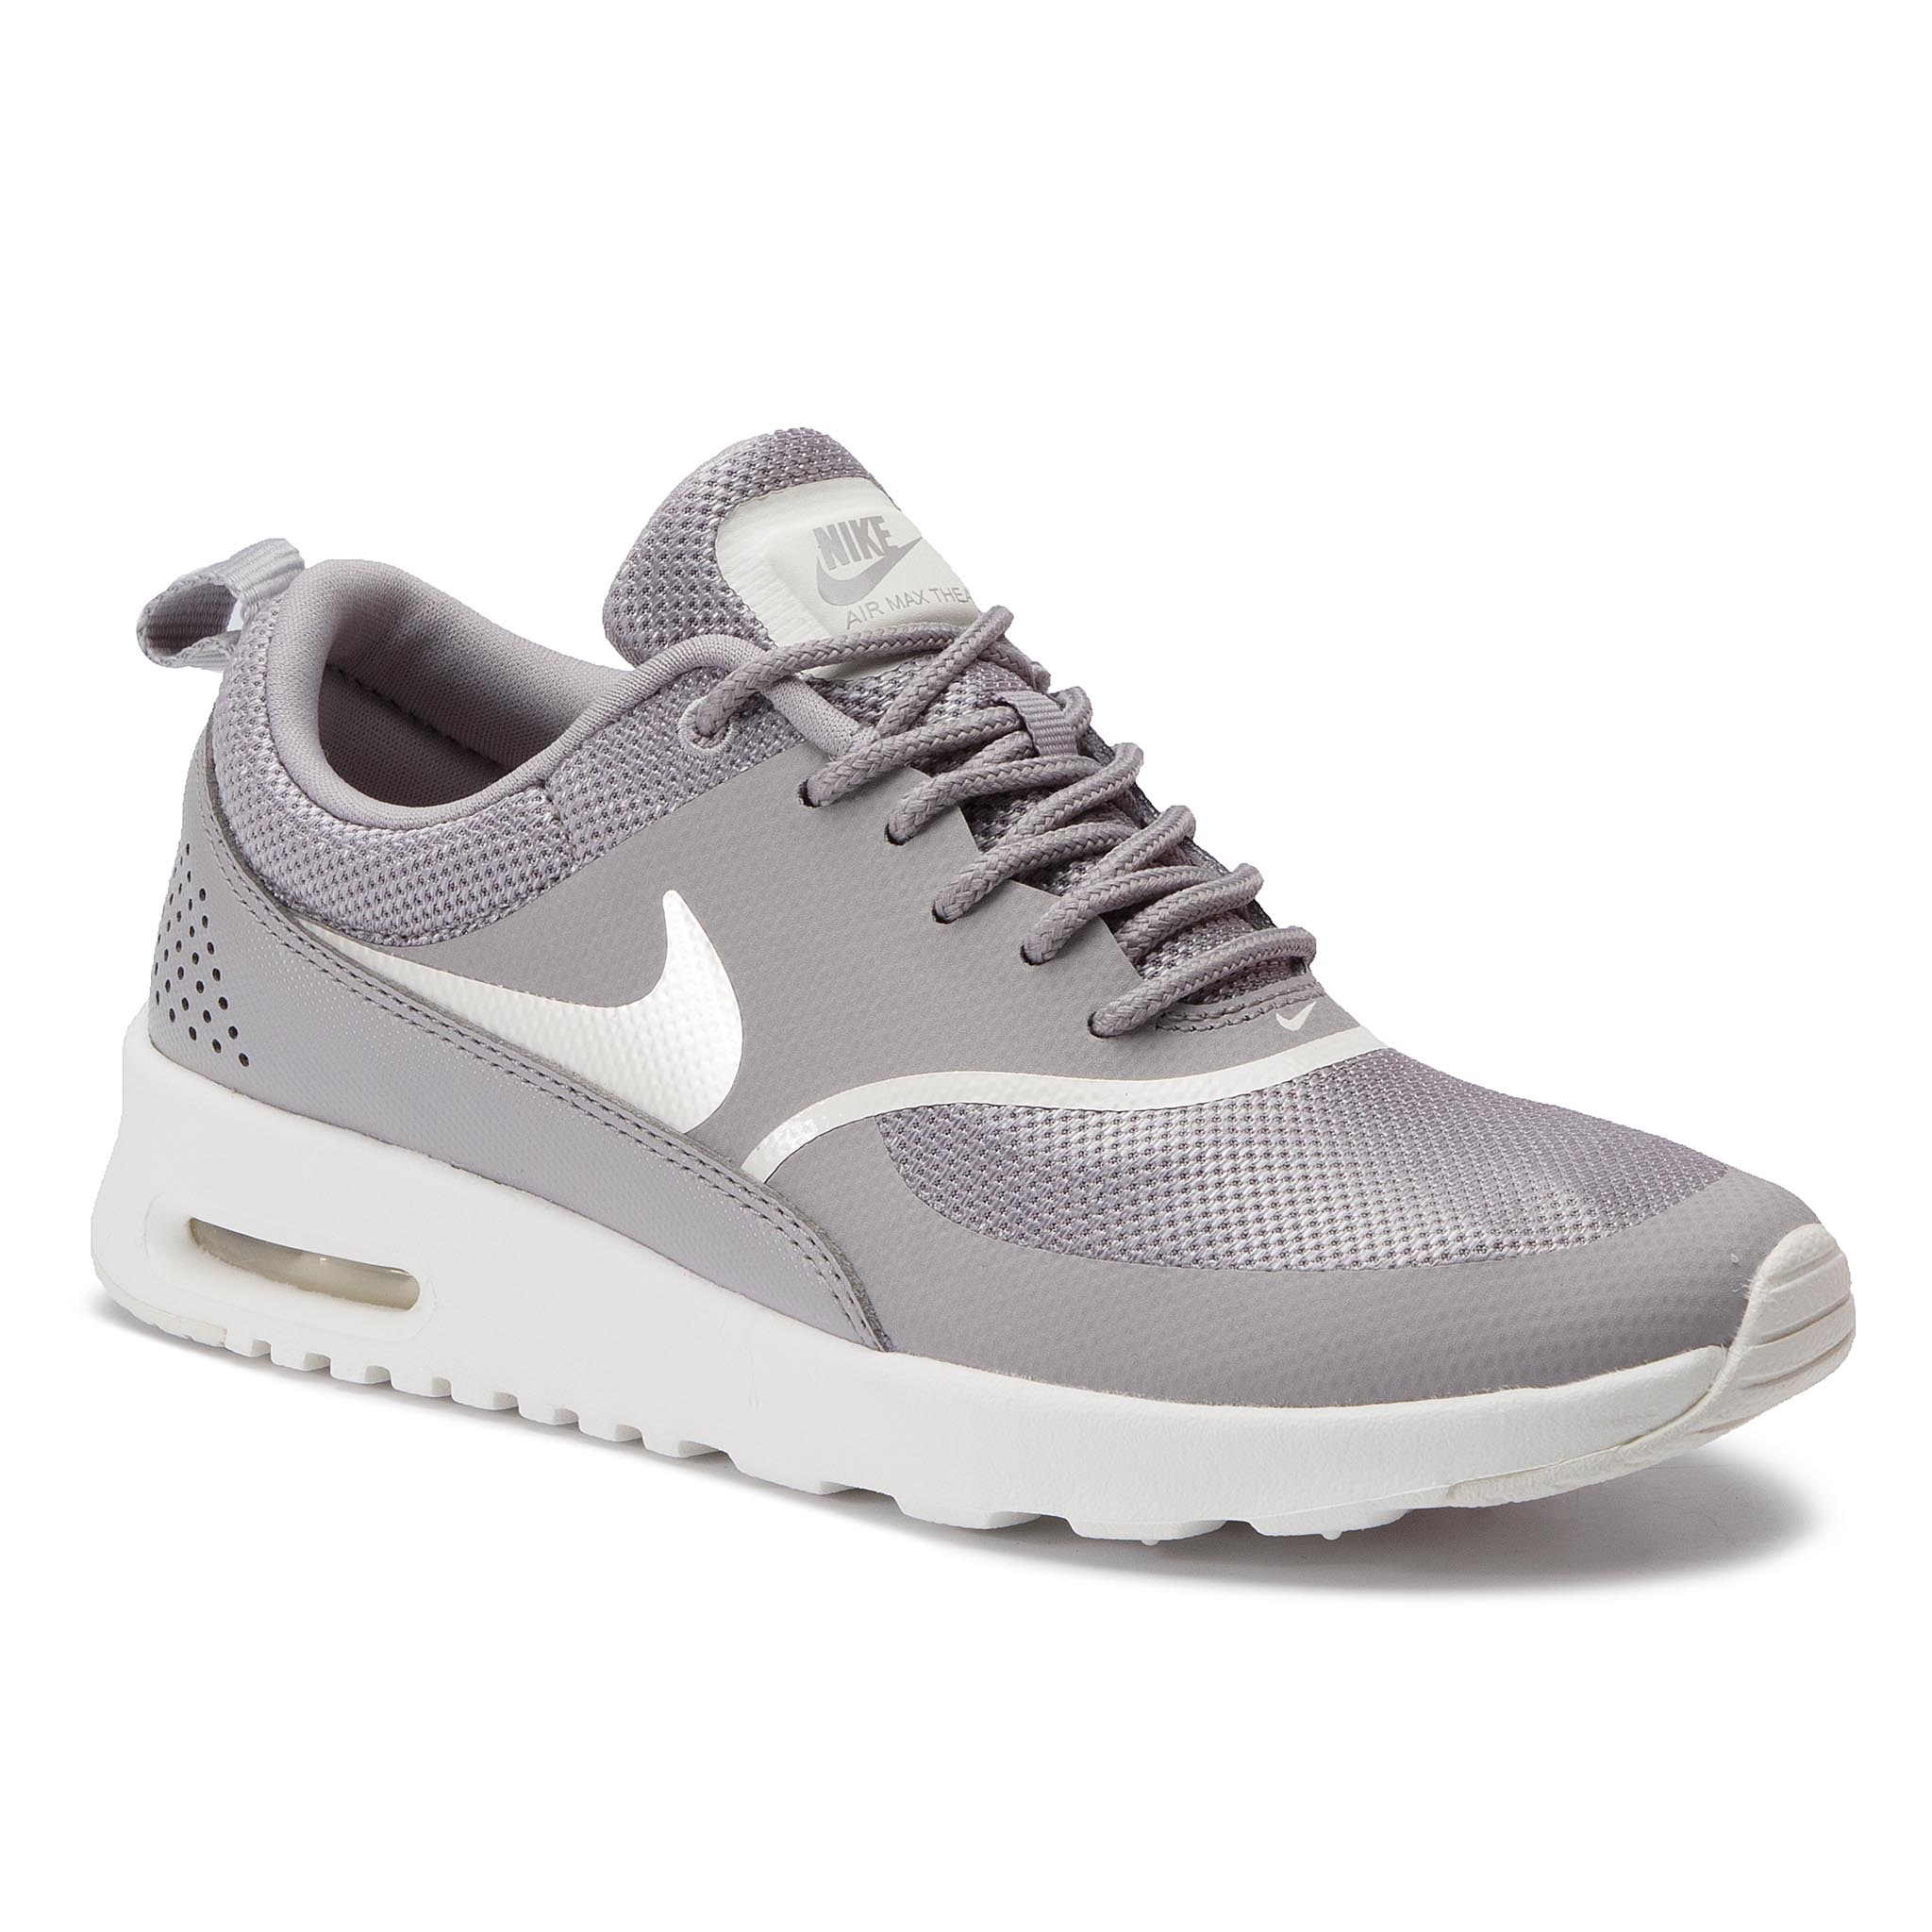 Topánky NIKE - Air Max Thea 599409 034 Atmosphere Grey/Sail